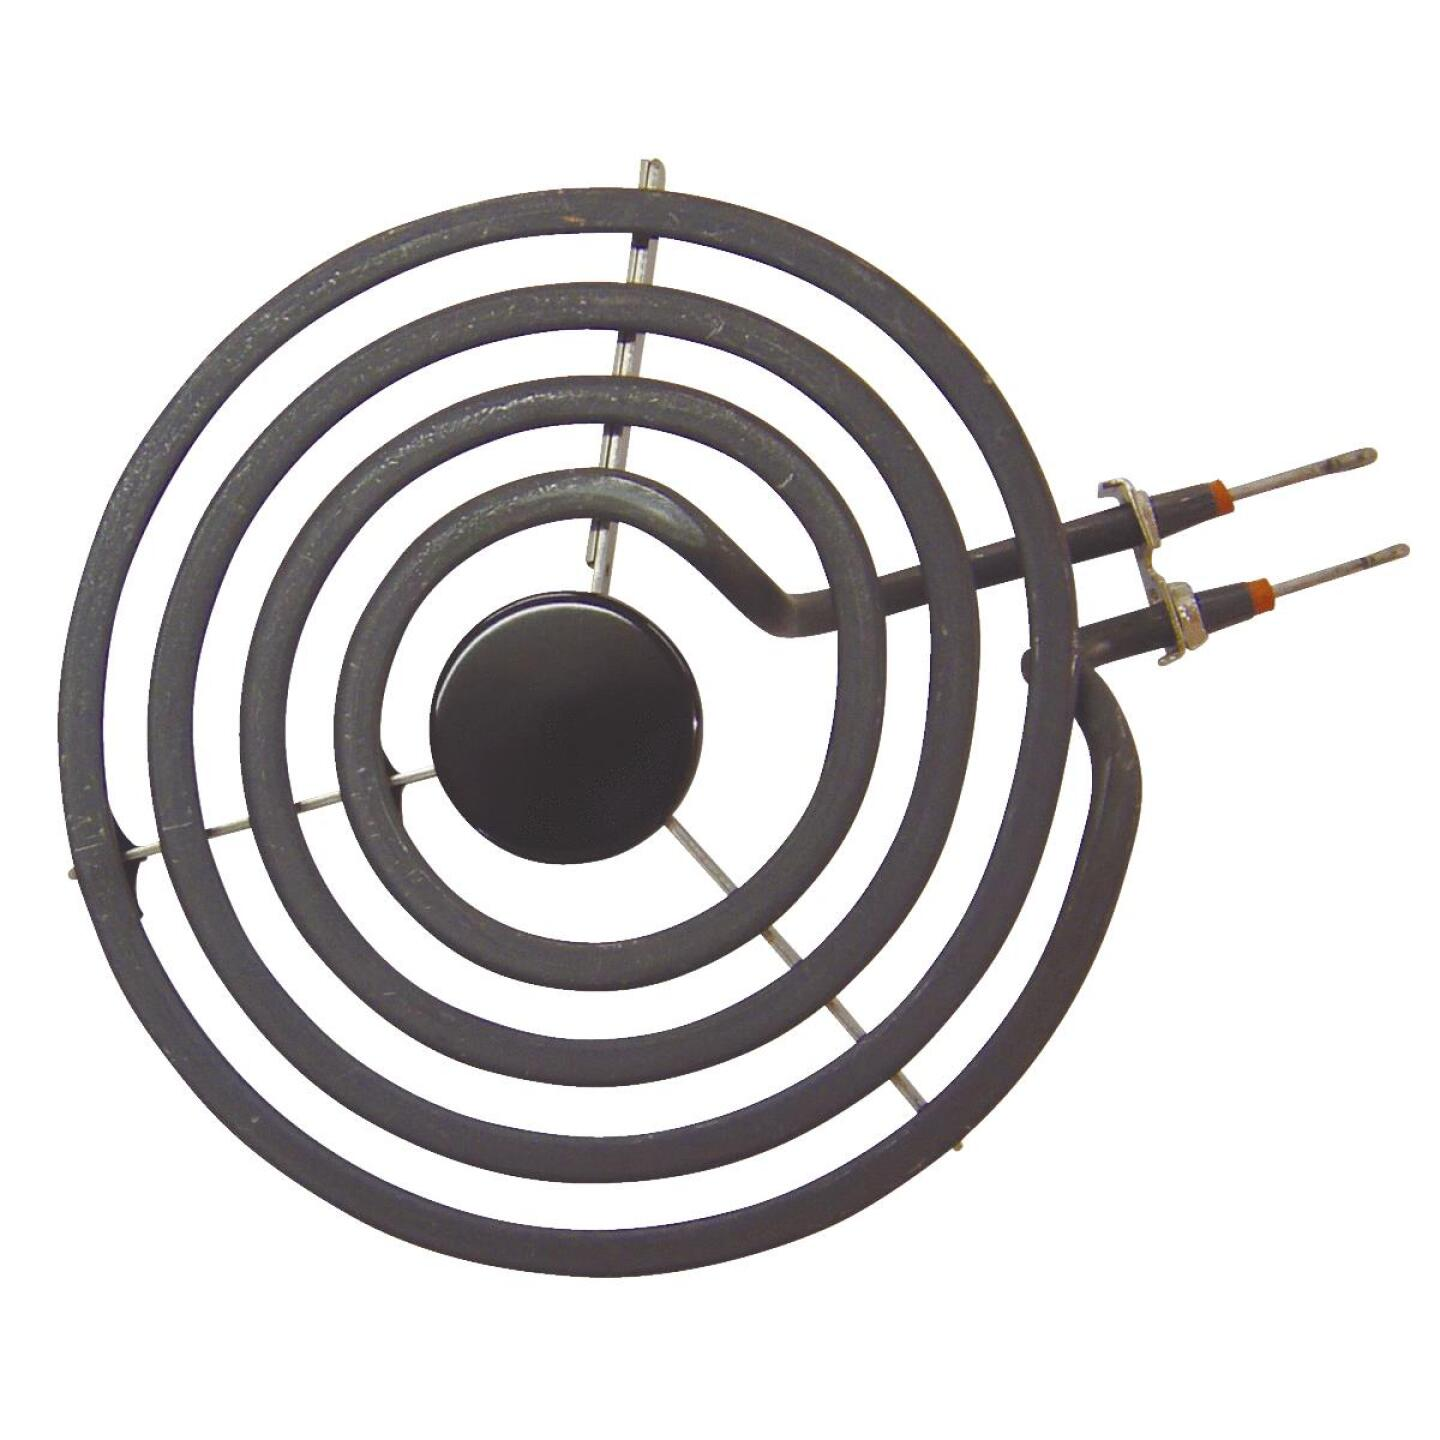 Range Kleen Style A 6 In. 4-Coil Plug-in Range Element with Y Bracket Image 1